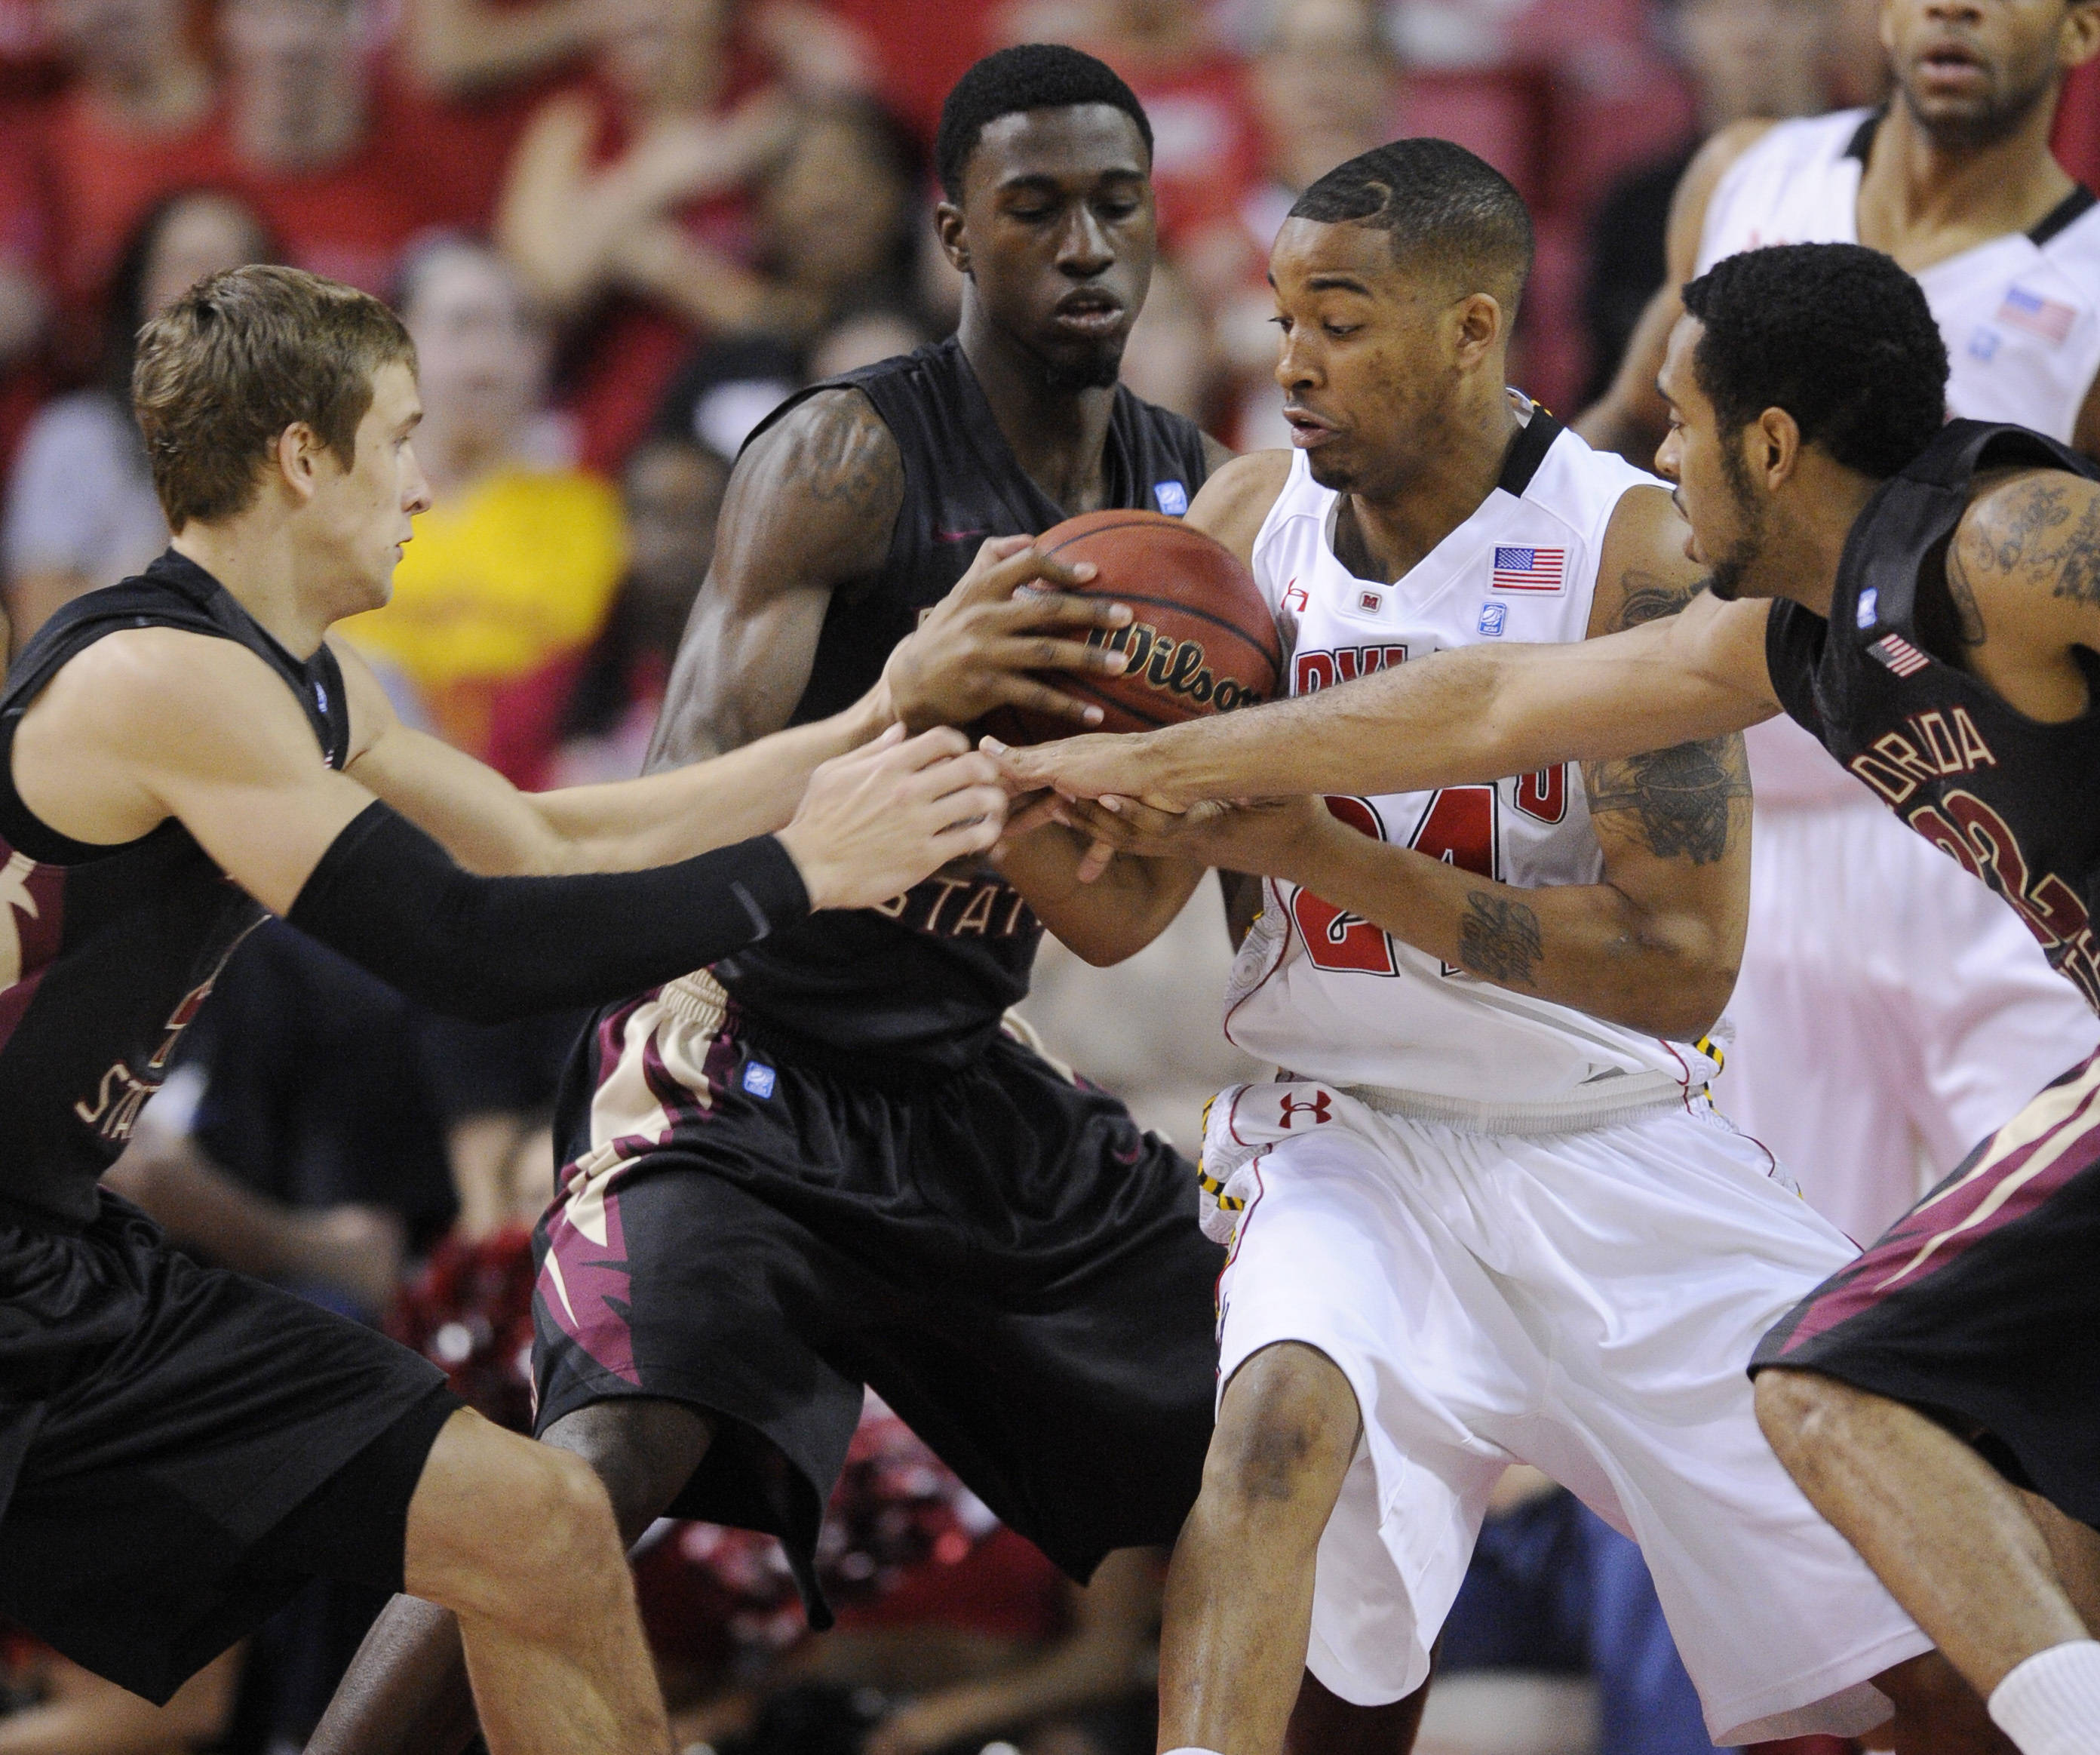 Maryland's Cliff Tucker, second from right, fights for the ball against Deividas Dulkys, left, and Derwin Kitchen, right, during the first half of an NCAA college basketball game, Wednesday, Feb. 23, 2011, in College Park, Md. (AP Photo/Nick Wass)